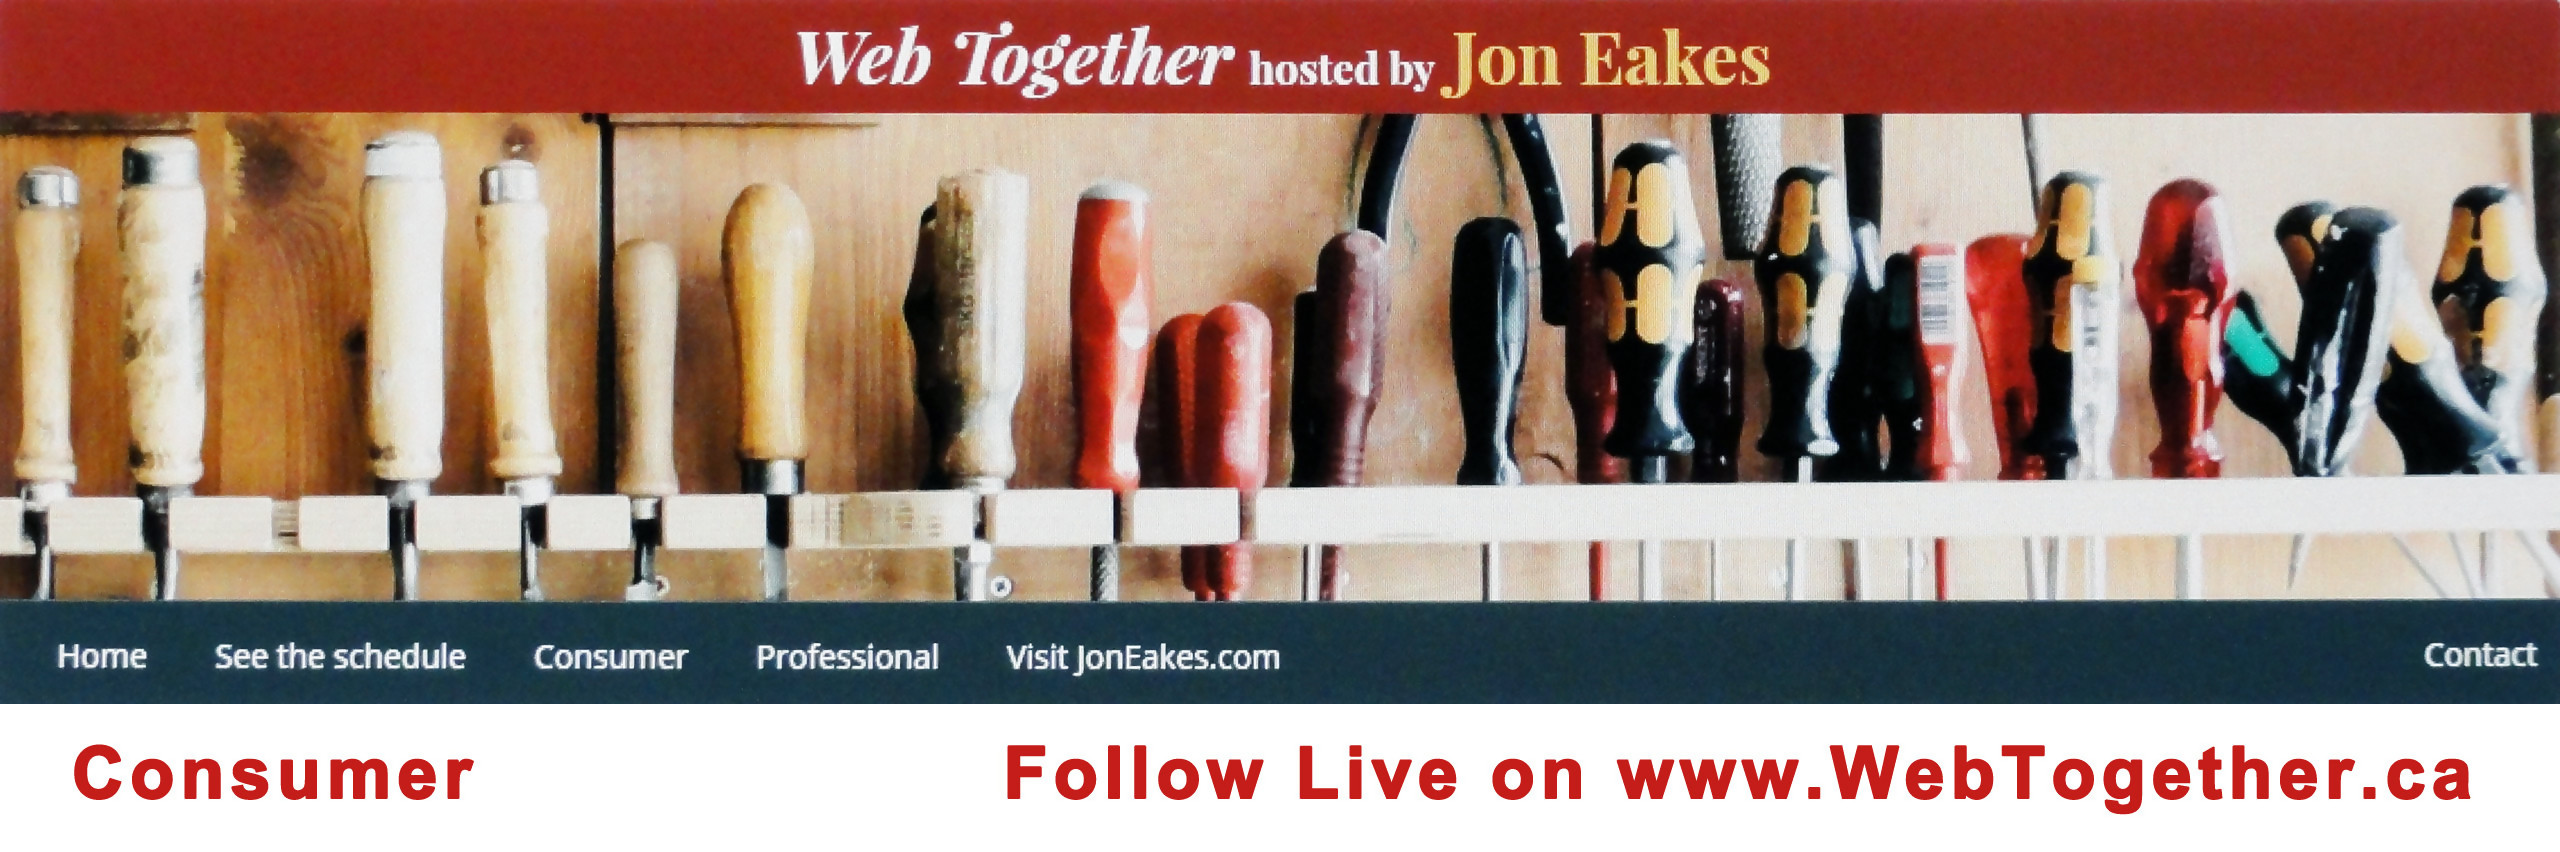 Ask Jon Eakes Live: Home Improvements